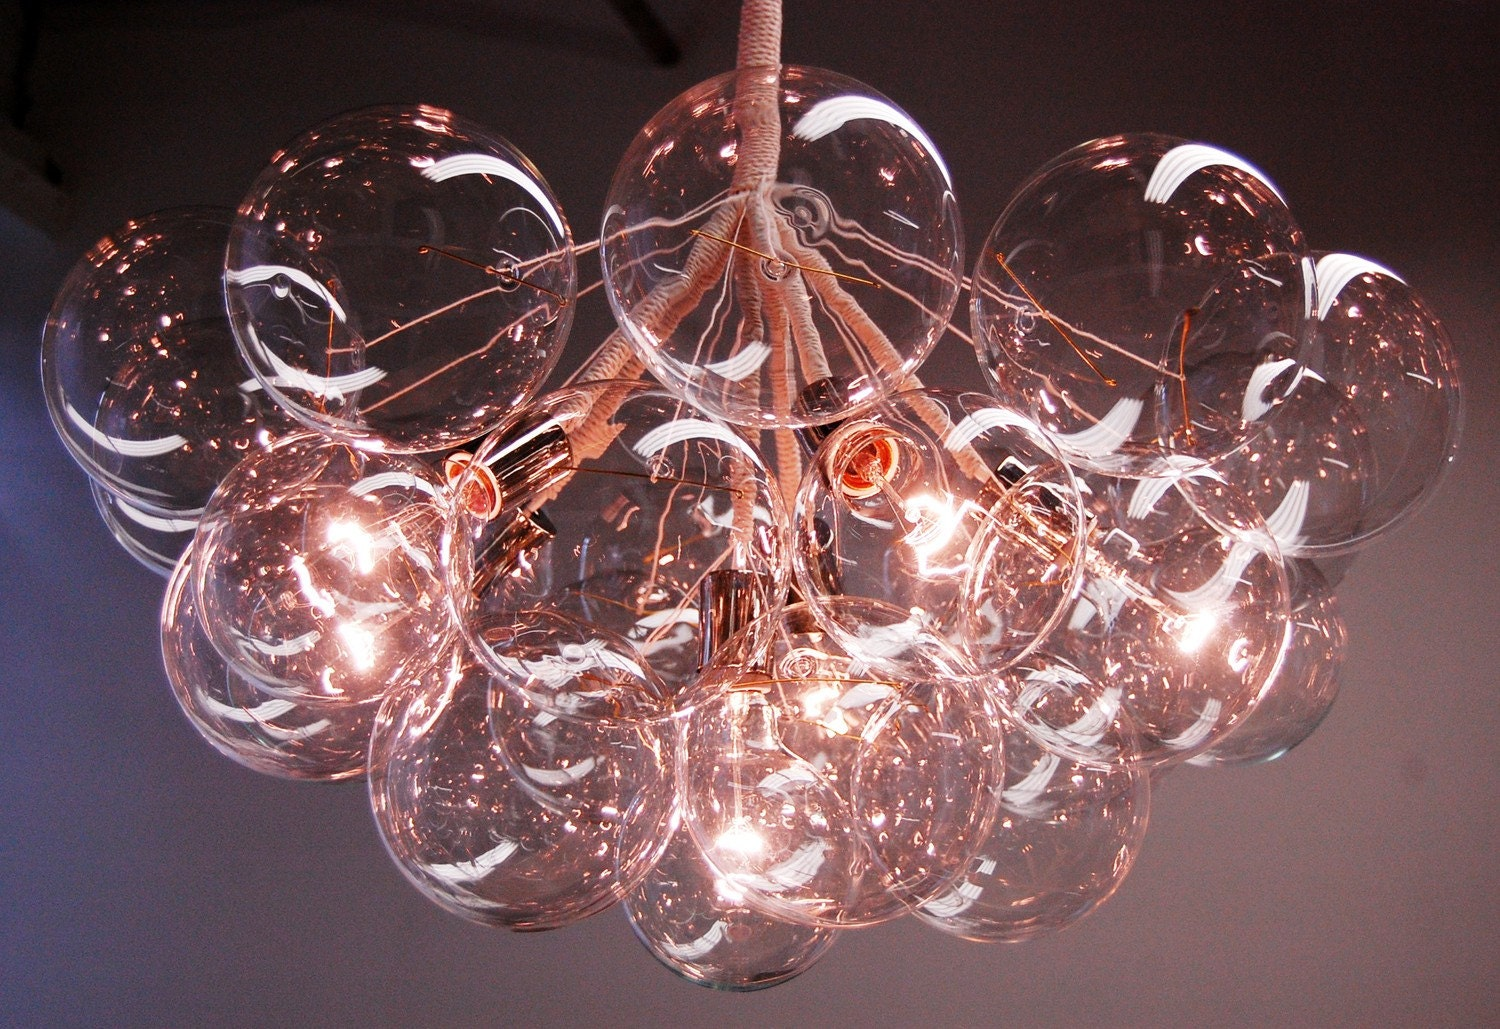 Jumbo Bubble Chandelier by PELLE by jeanpelle on Etsy from etsy.com